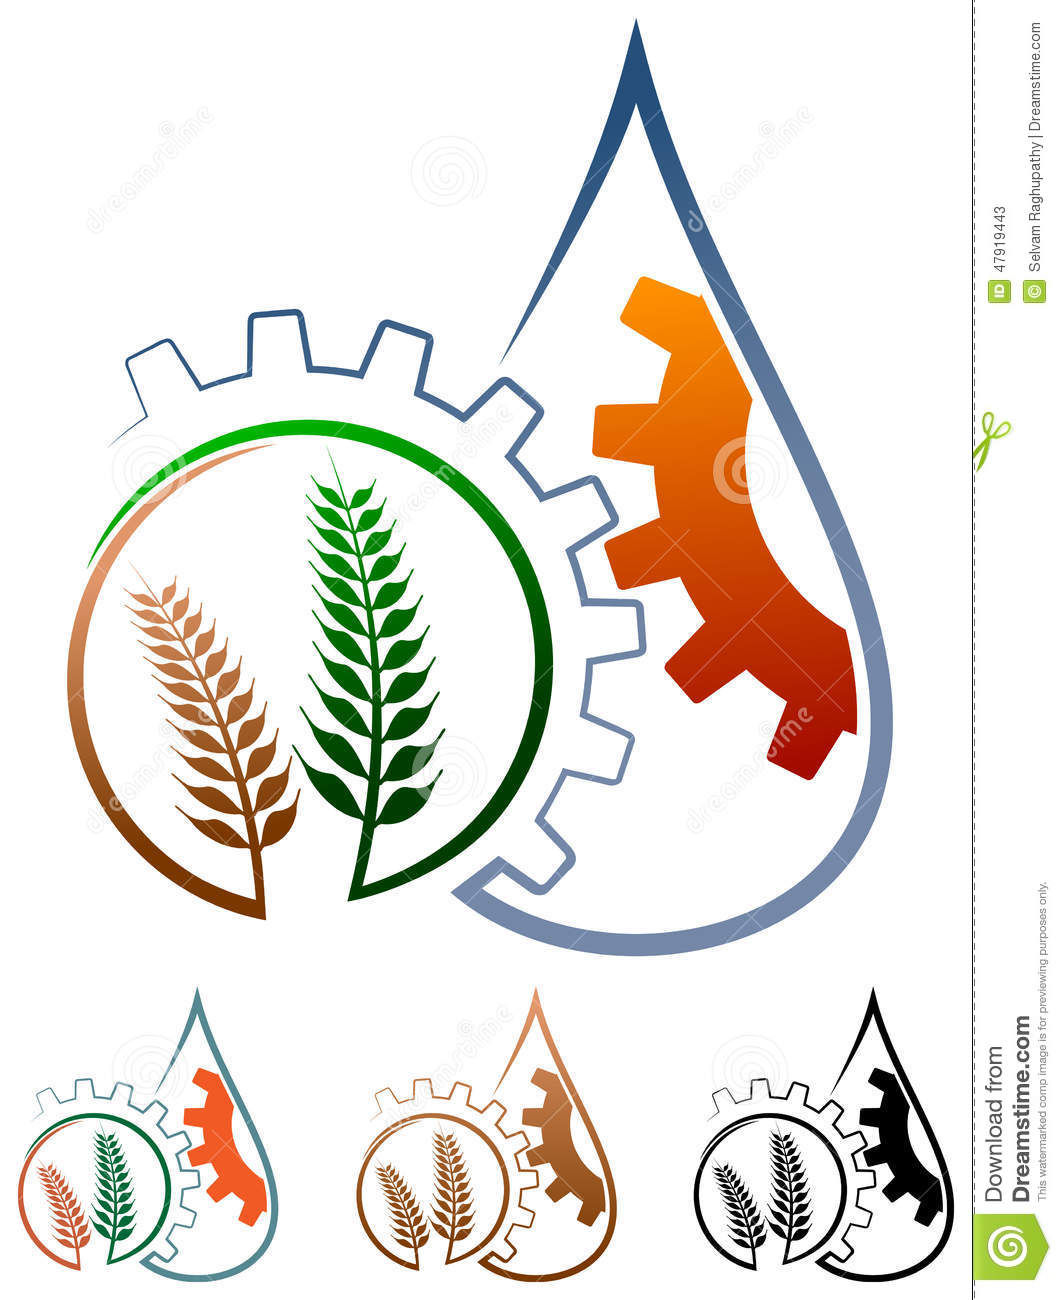 Agriculture Logo Stock Vector - Image: 47919443